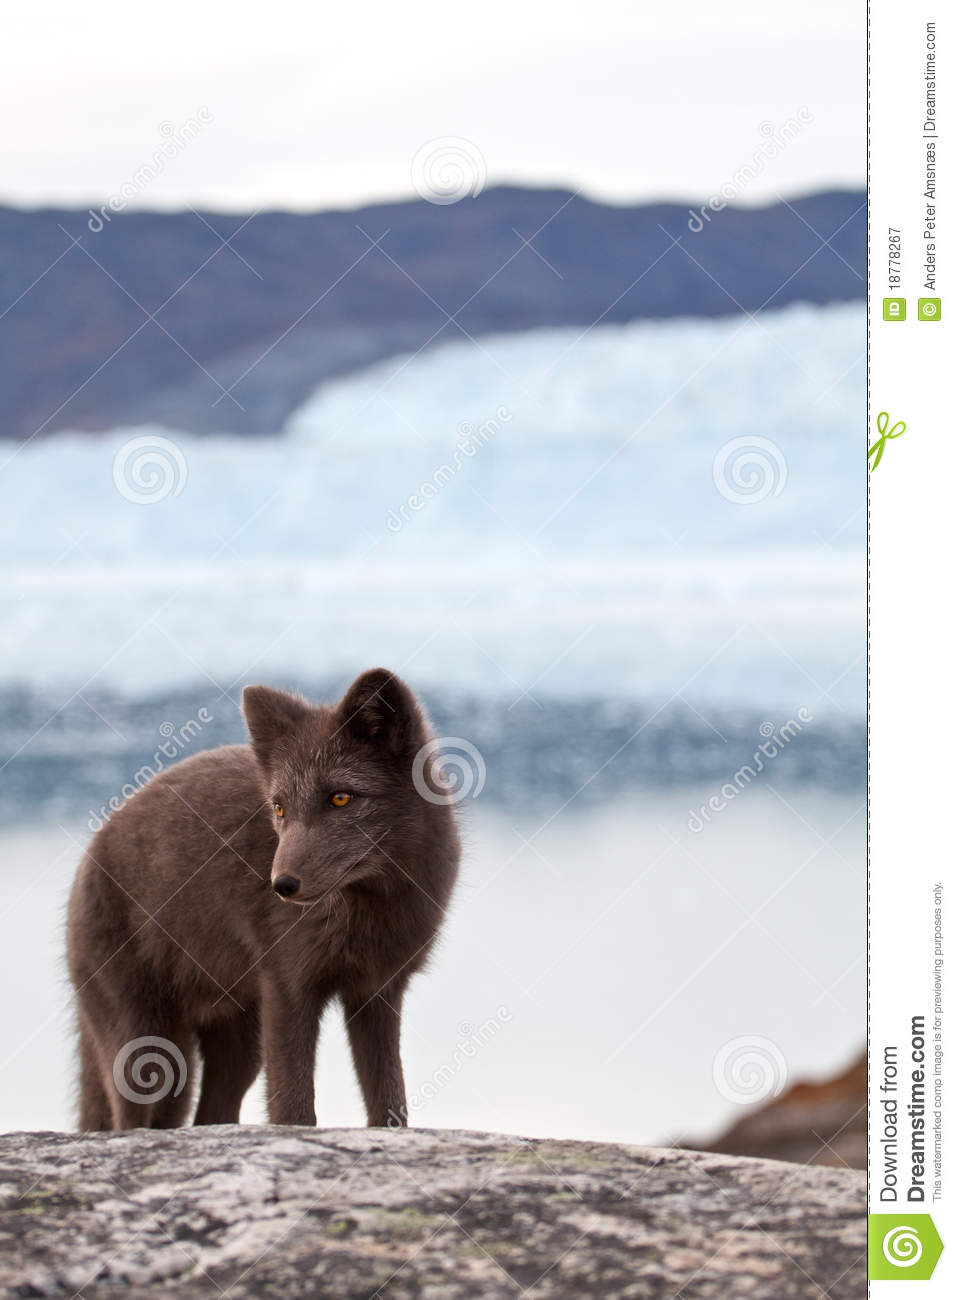 Fox arctique